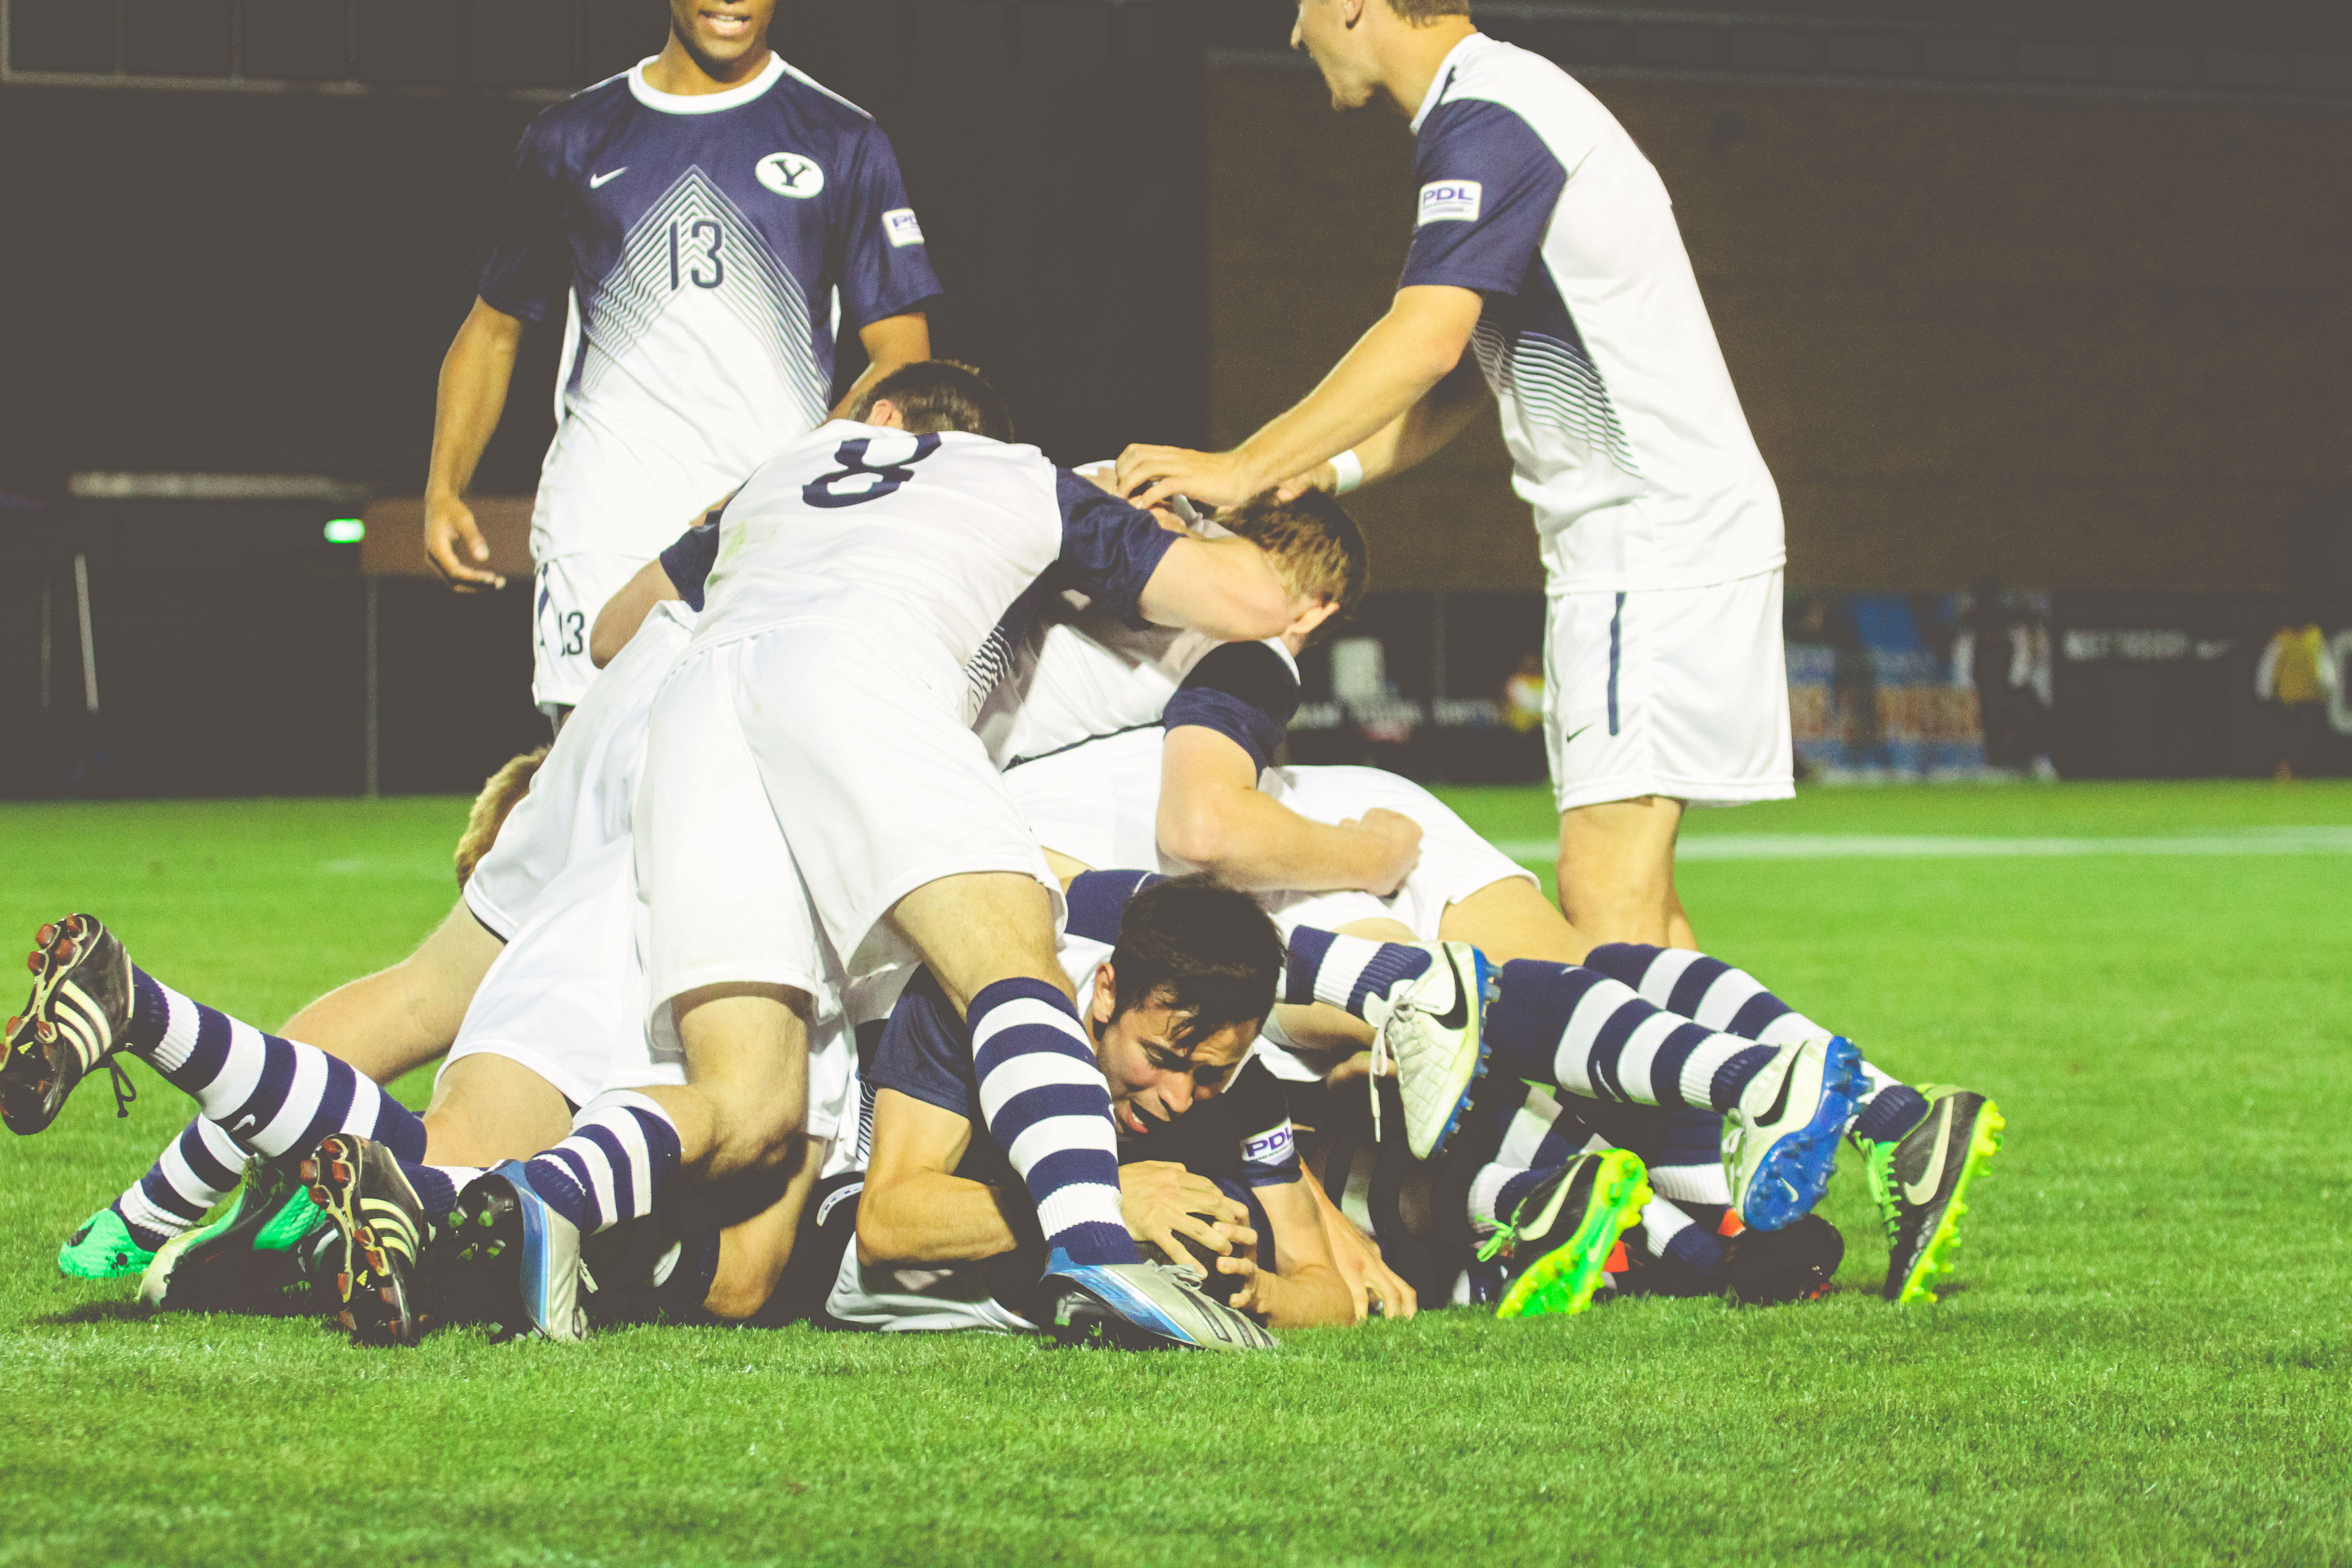 BYU men's soccer players celebrate a victory. They will compete in the PDL tournament for the first time since 2007 on Saturday night in Las Vegas. (